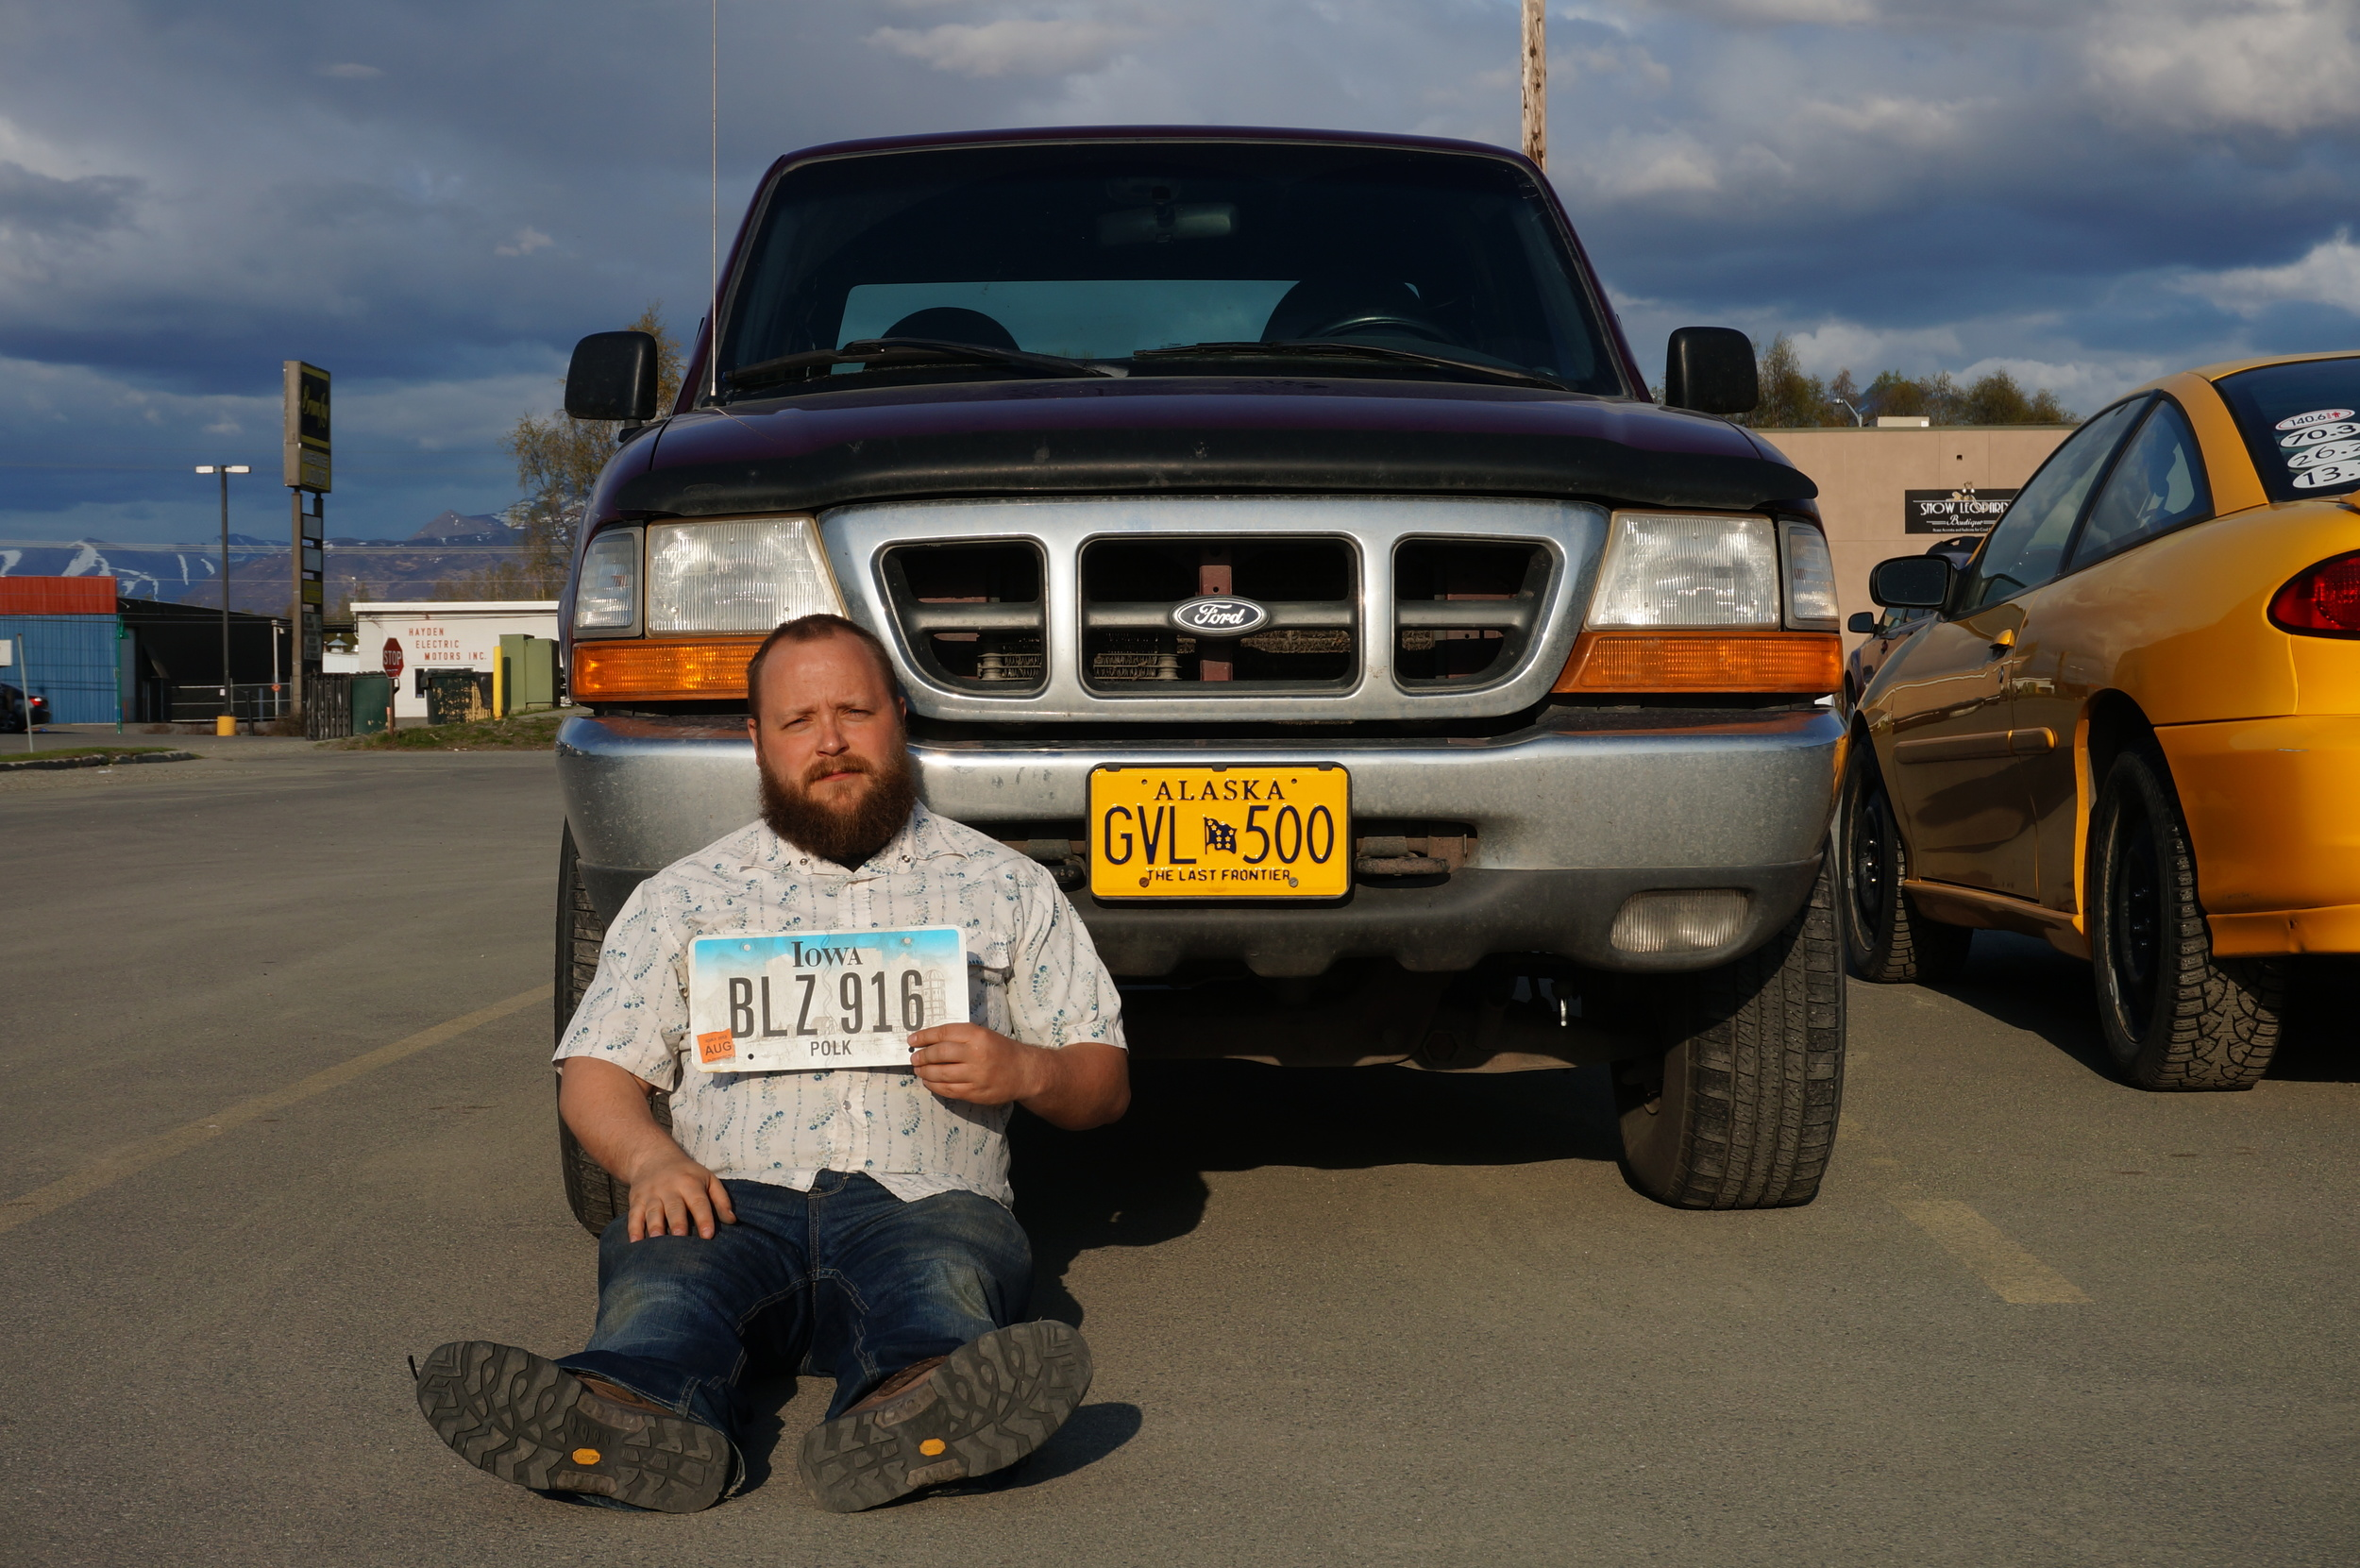 Kenny made it official: he changed from Iowa plates to an Alaska one. I love capturing small milestones like this.